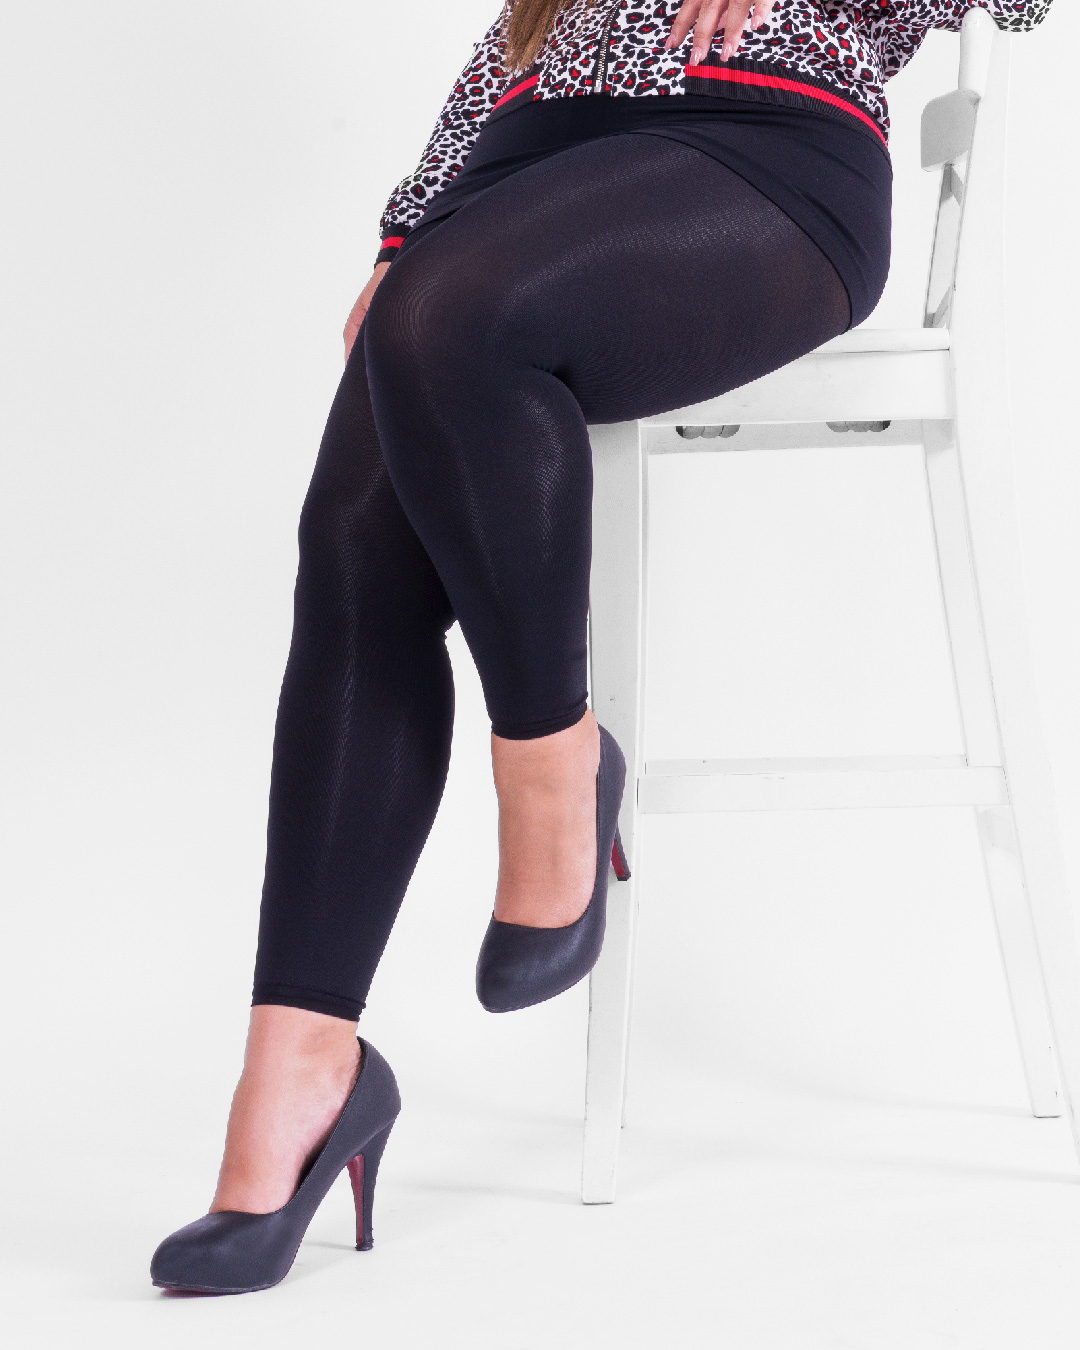 personalsize-exclusive-leggings-exclusive-prd_003.jpg